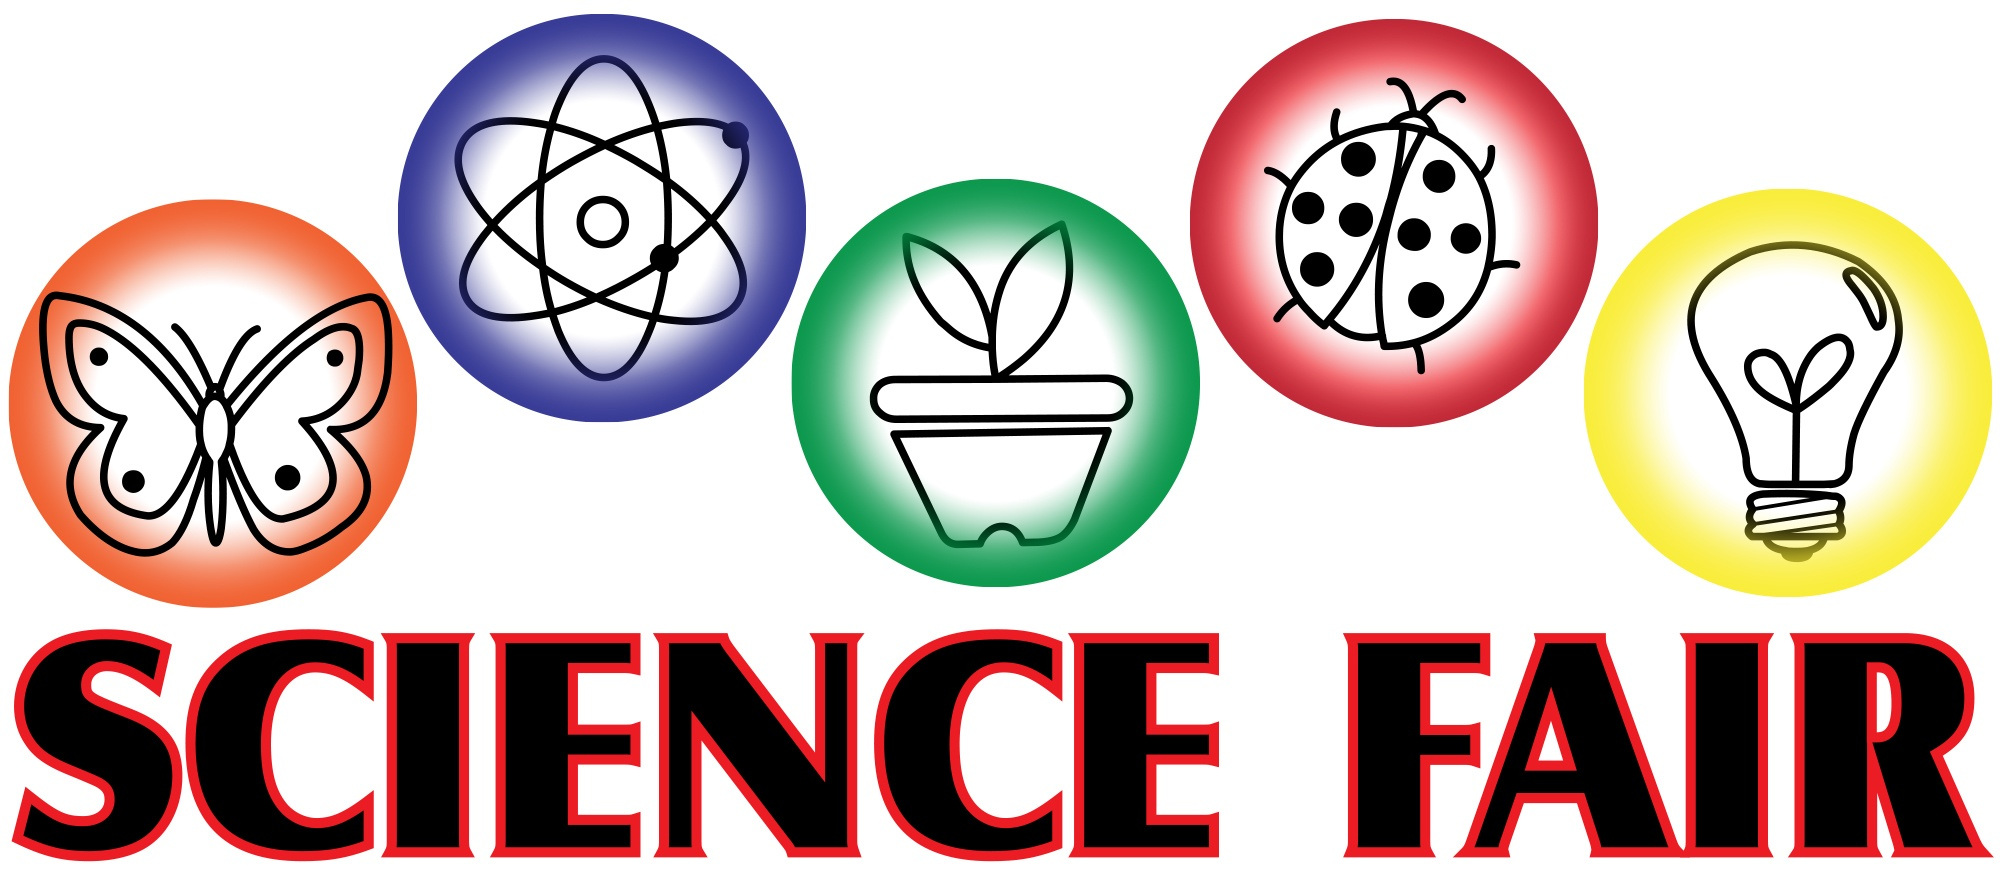 Science clipart science fair #3